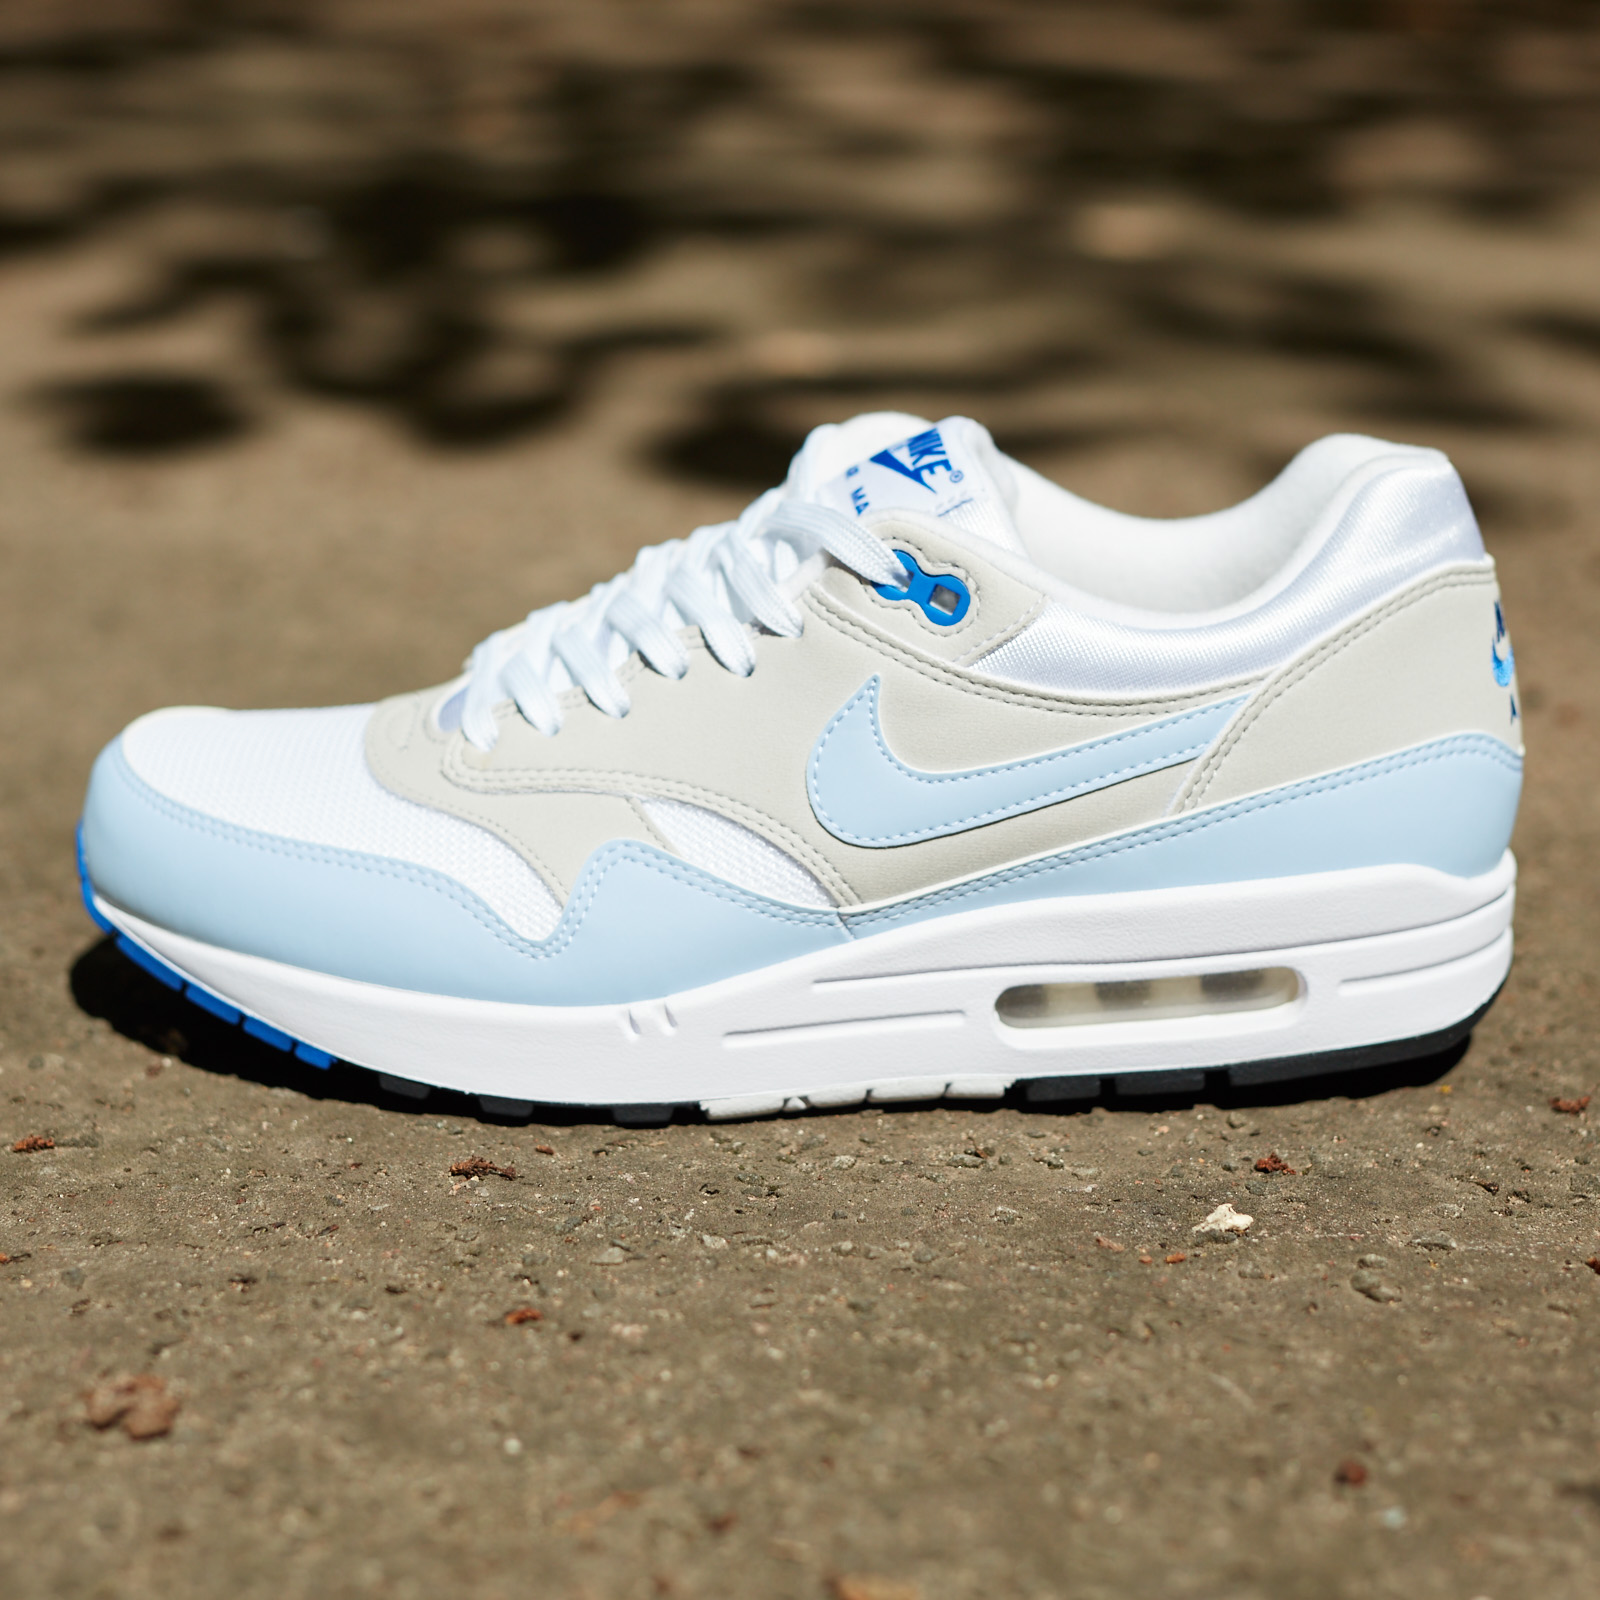 new arrival c55fa 278b7 Nike Air Max 1 CX QS - 811373-100 - Sneakersnstuff   sneakers   streetwear  online since 1999